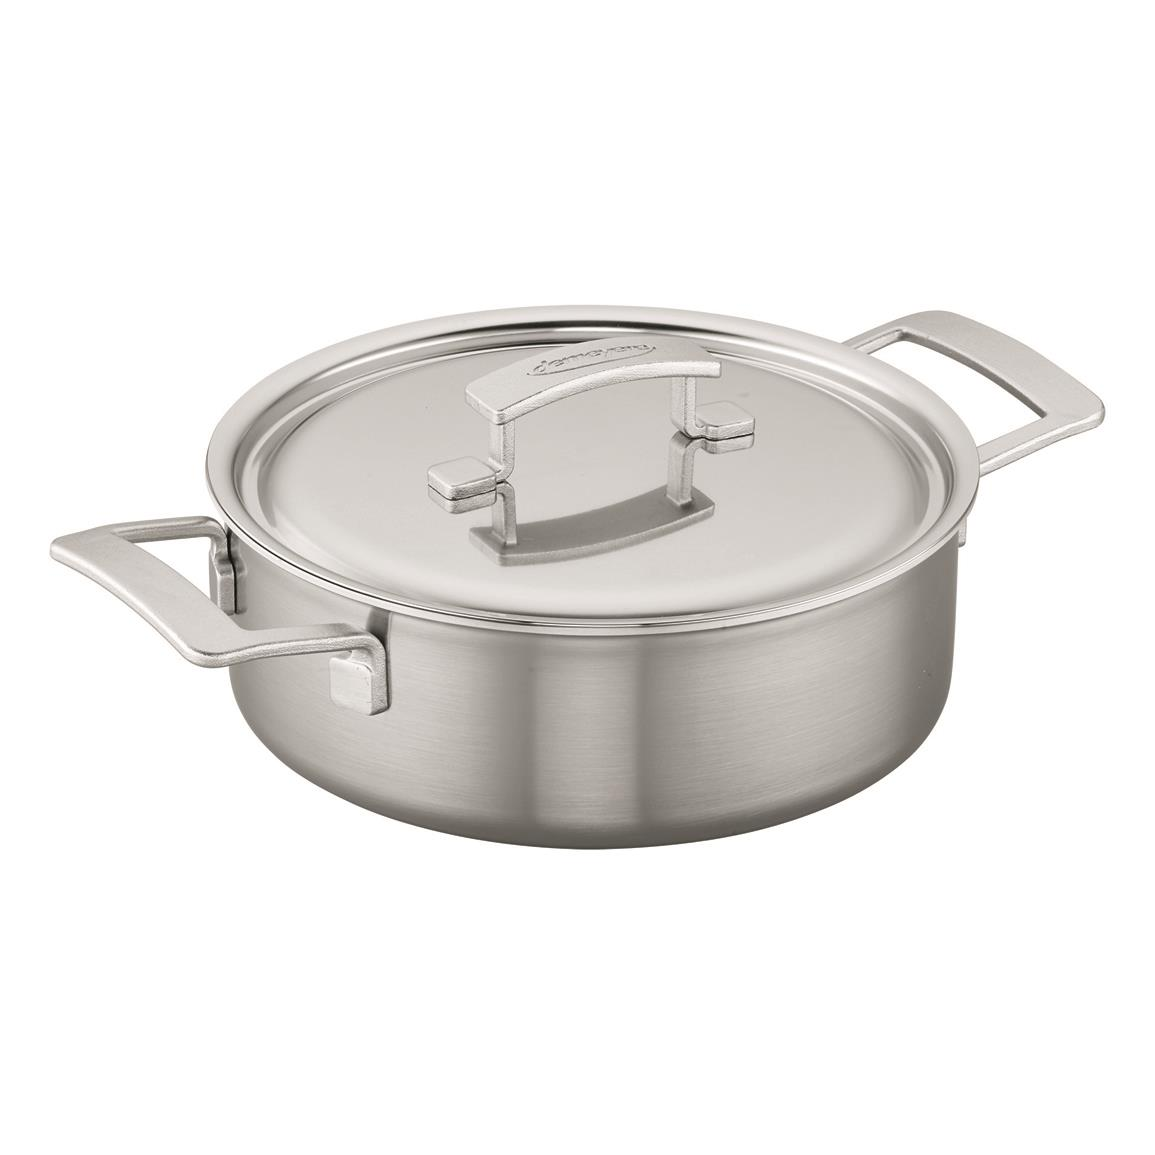 Demeyere Industry 5-ply 4-qt. Stainless Steel Deep Saute Pan